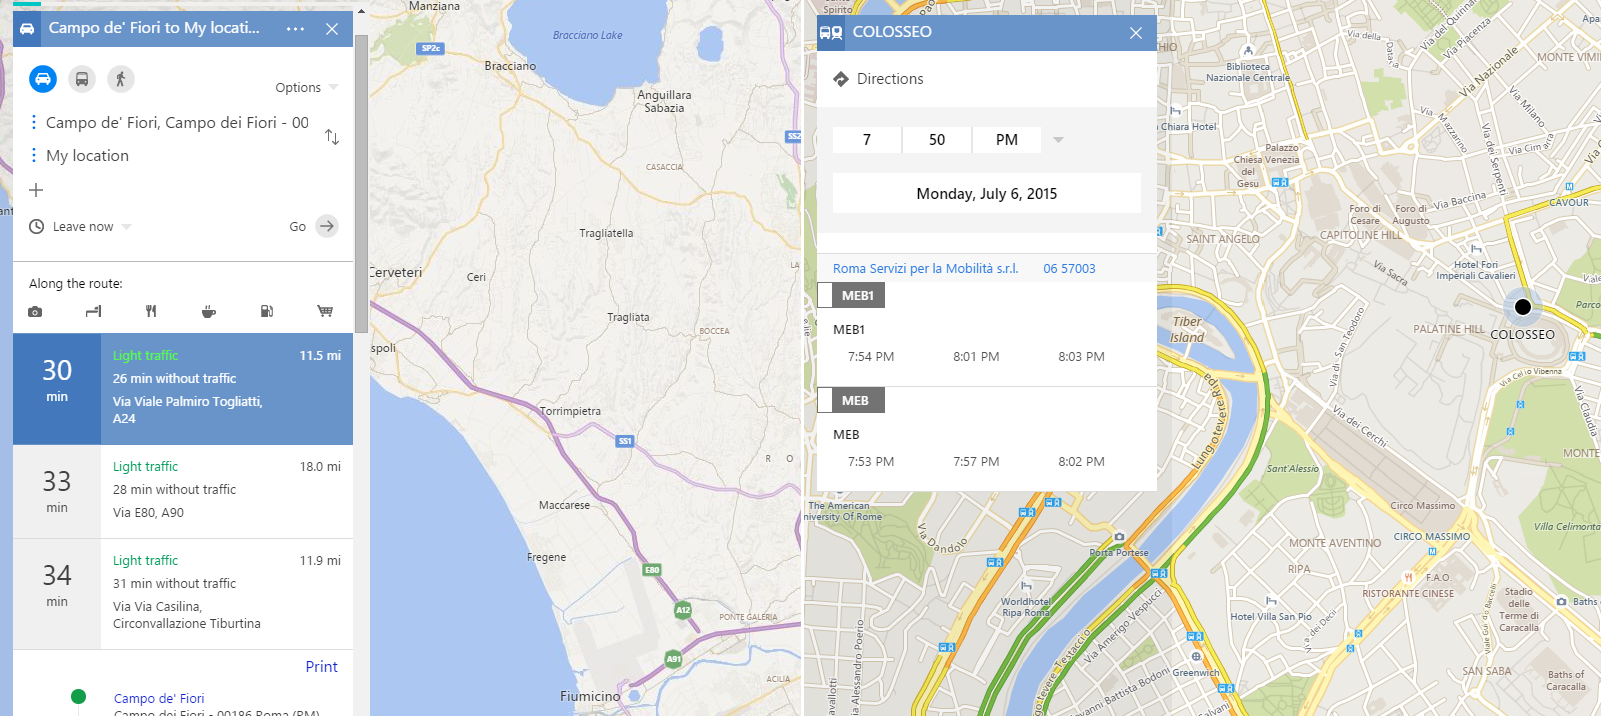 bing_maps_preview